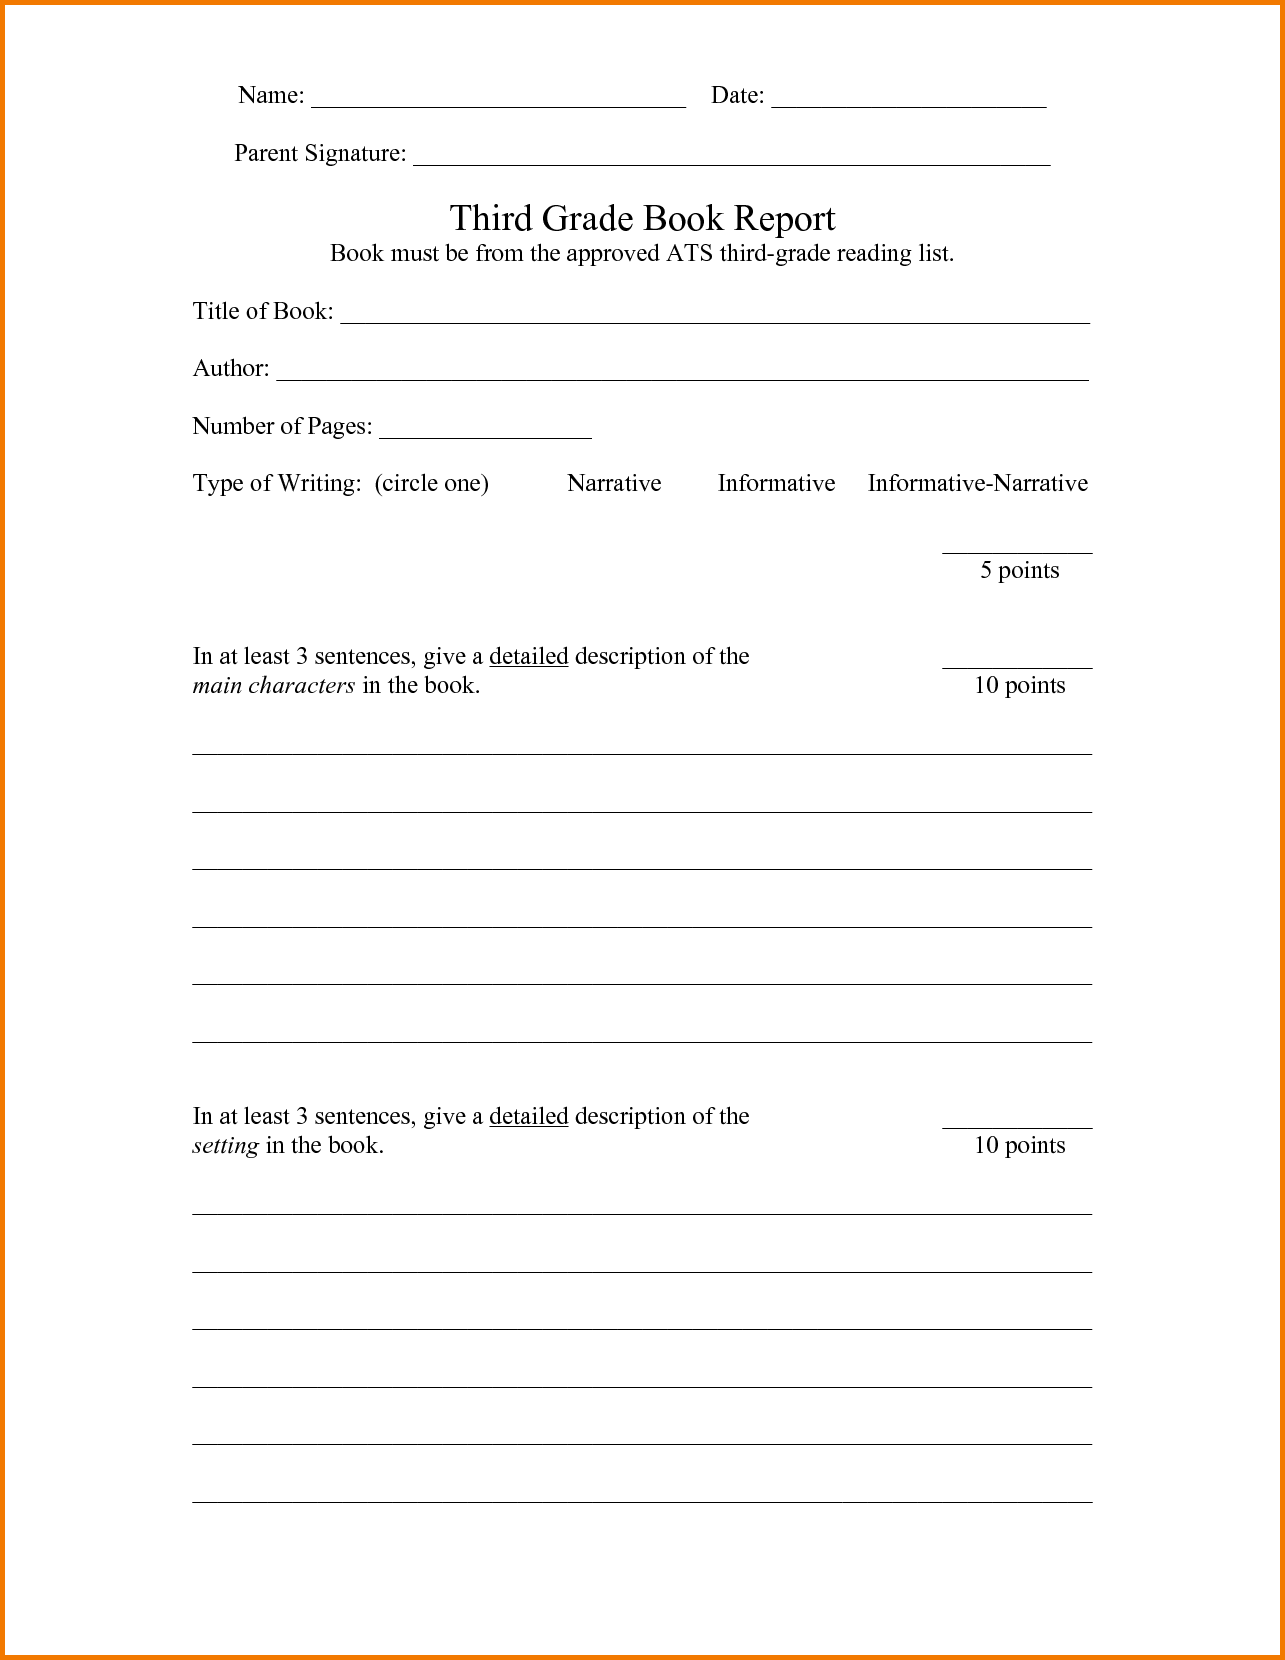 Detailed Expense Report Template and 6 Third Grade Book Report Template Expense Report